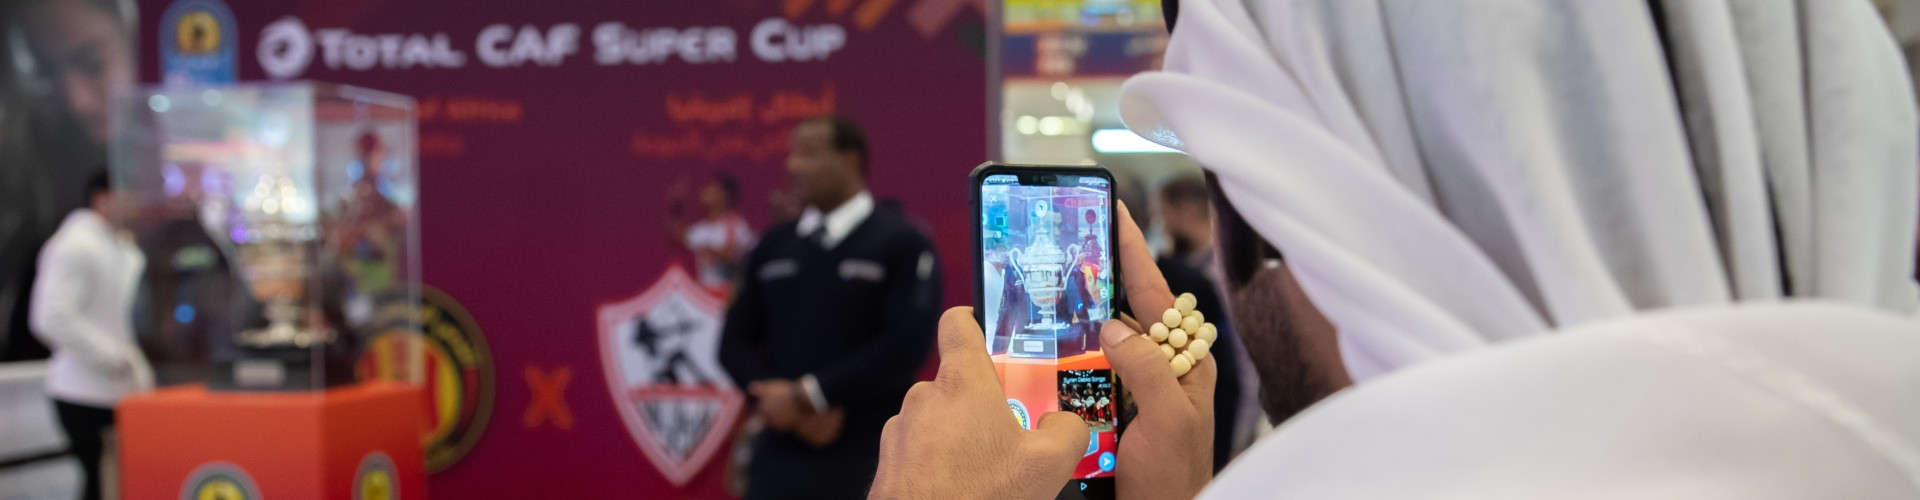 The TOTAL CAF Super Cup trophy was displayed in Doha Festival City